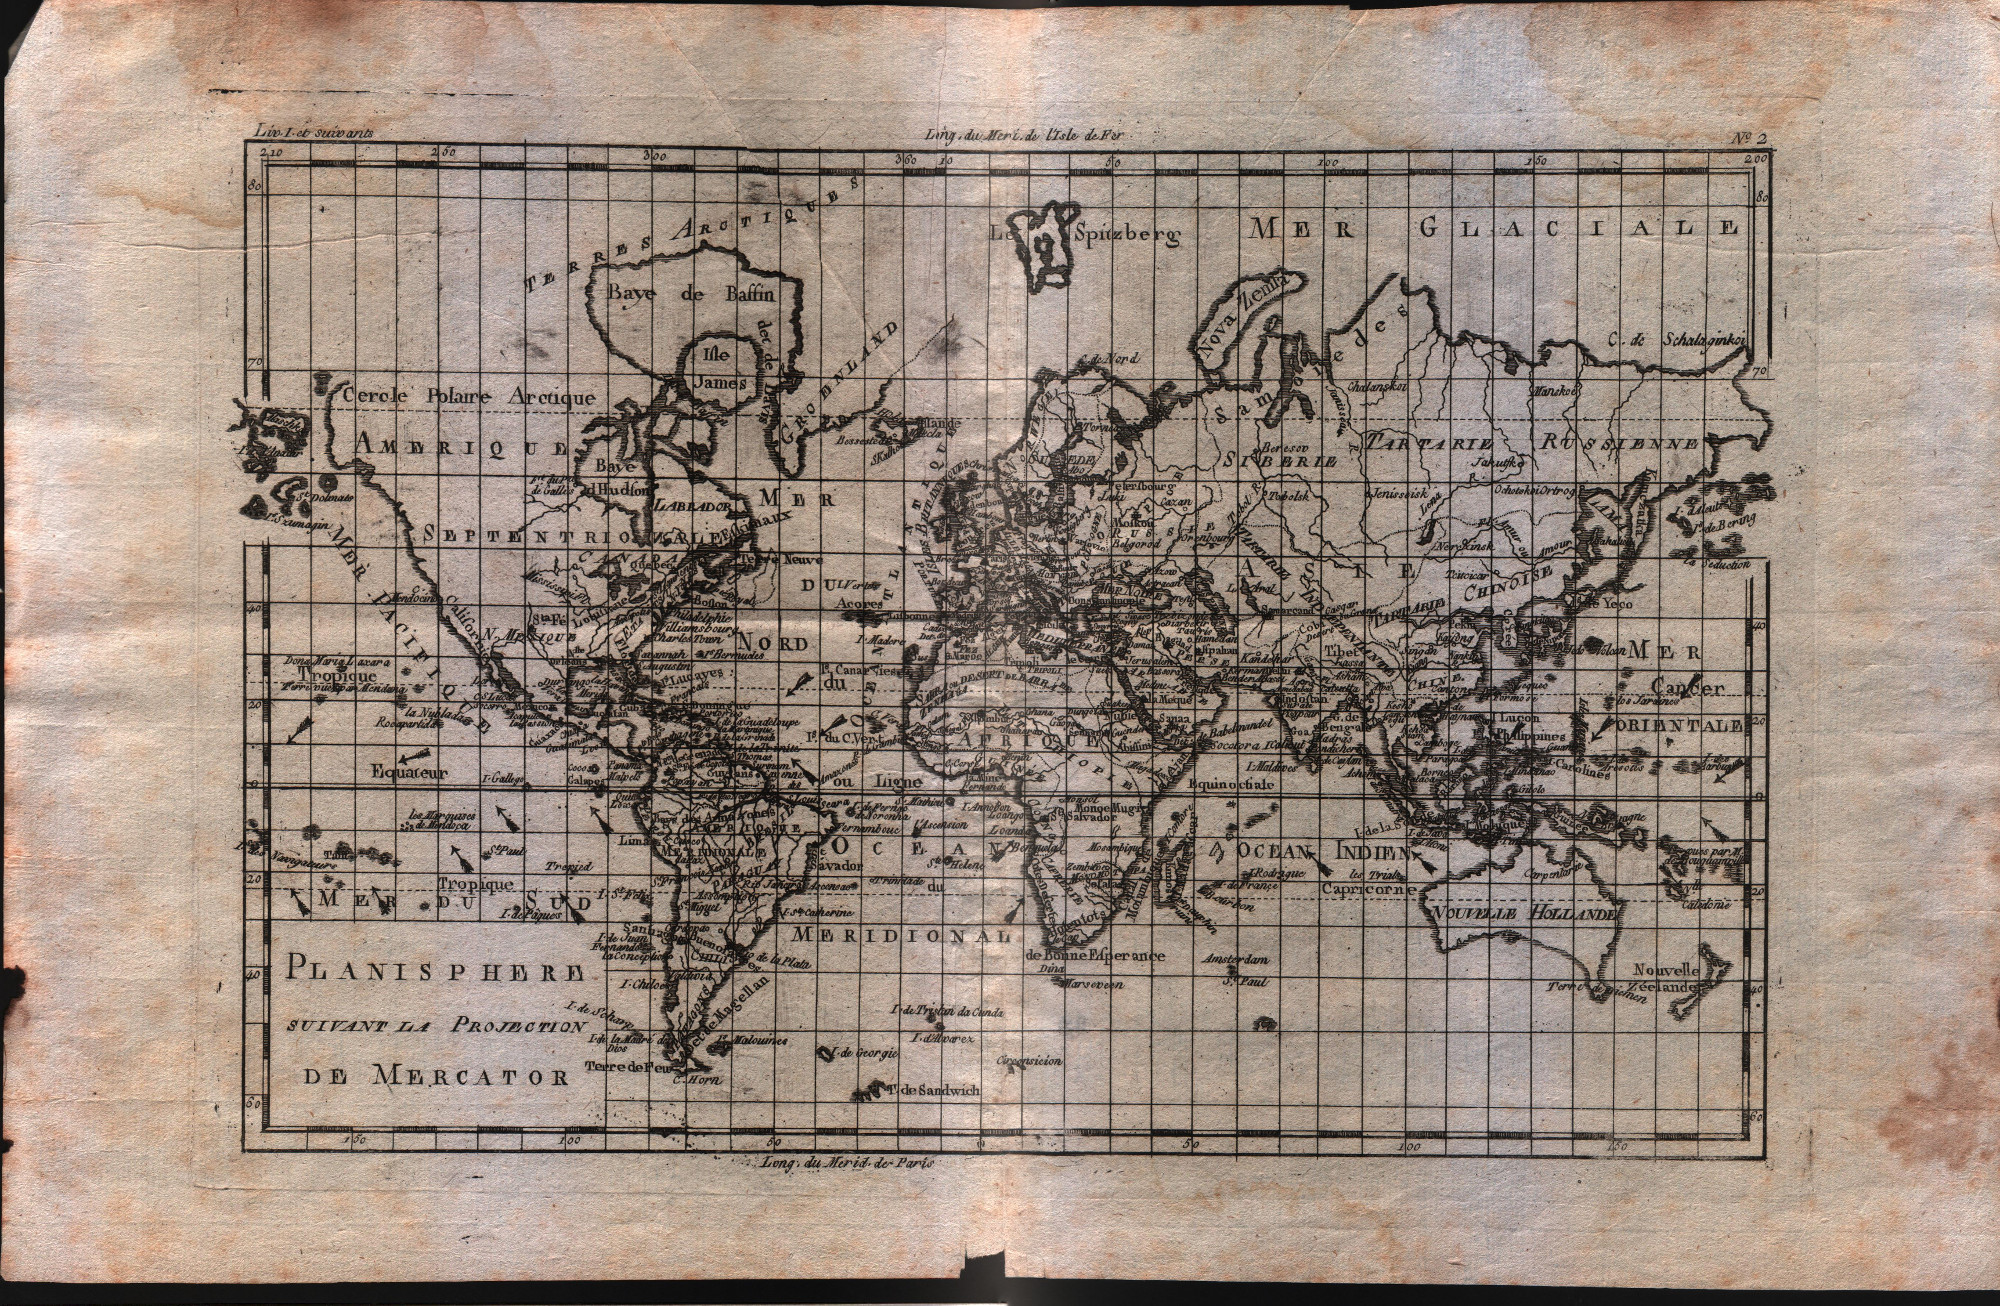 Planisphere suivant la projection de Mercator